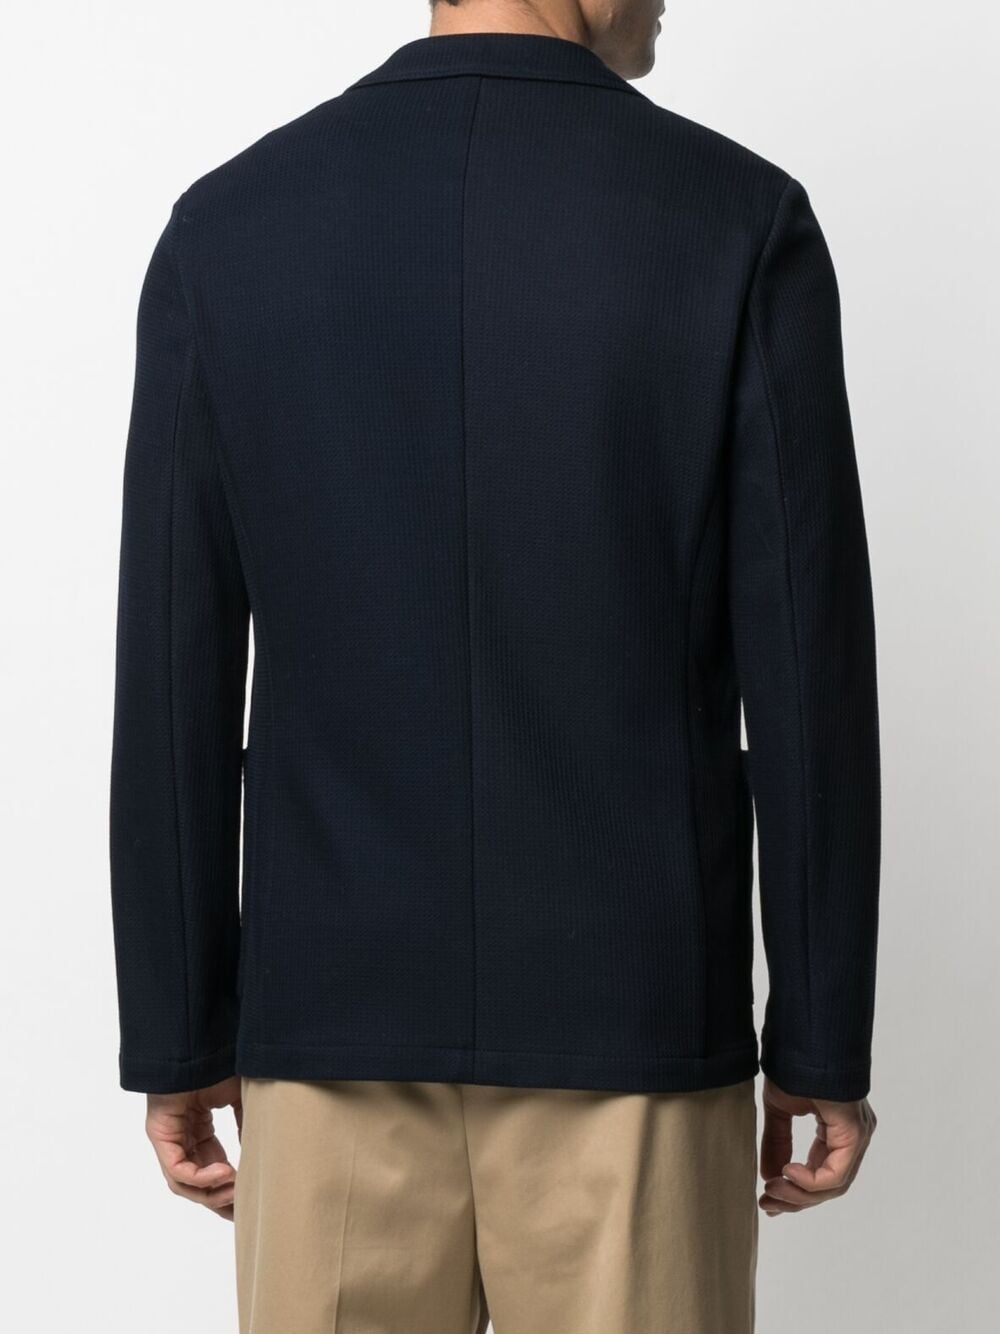 Navy-blue cotton double-breasted cotton blazer   ALTEA |  | 215230701